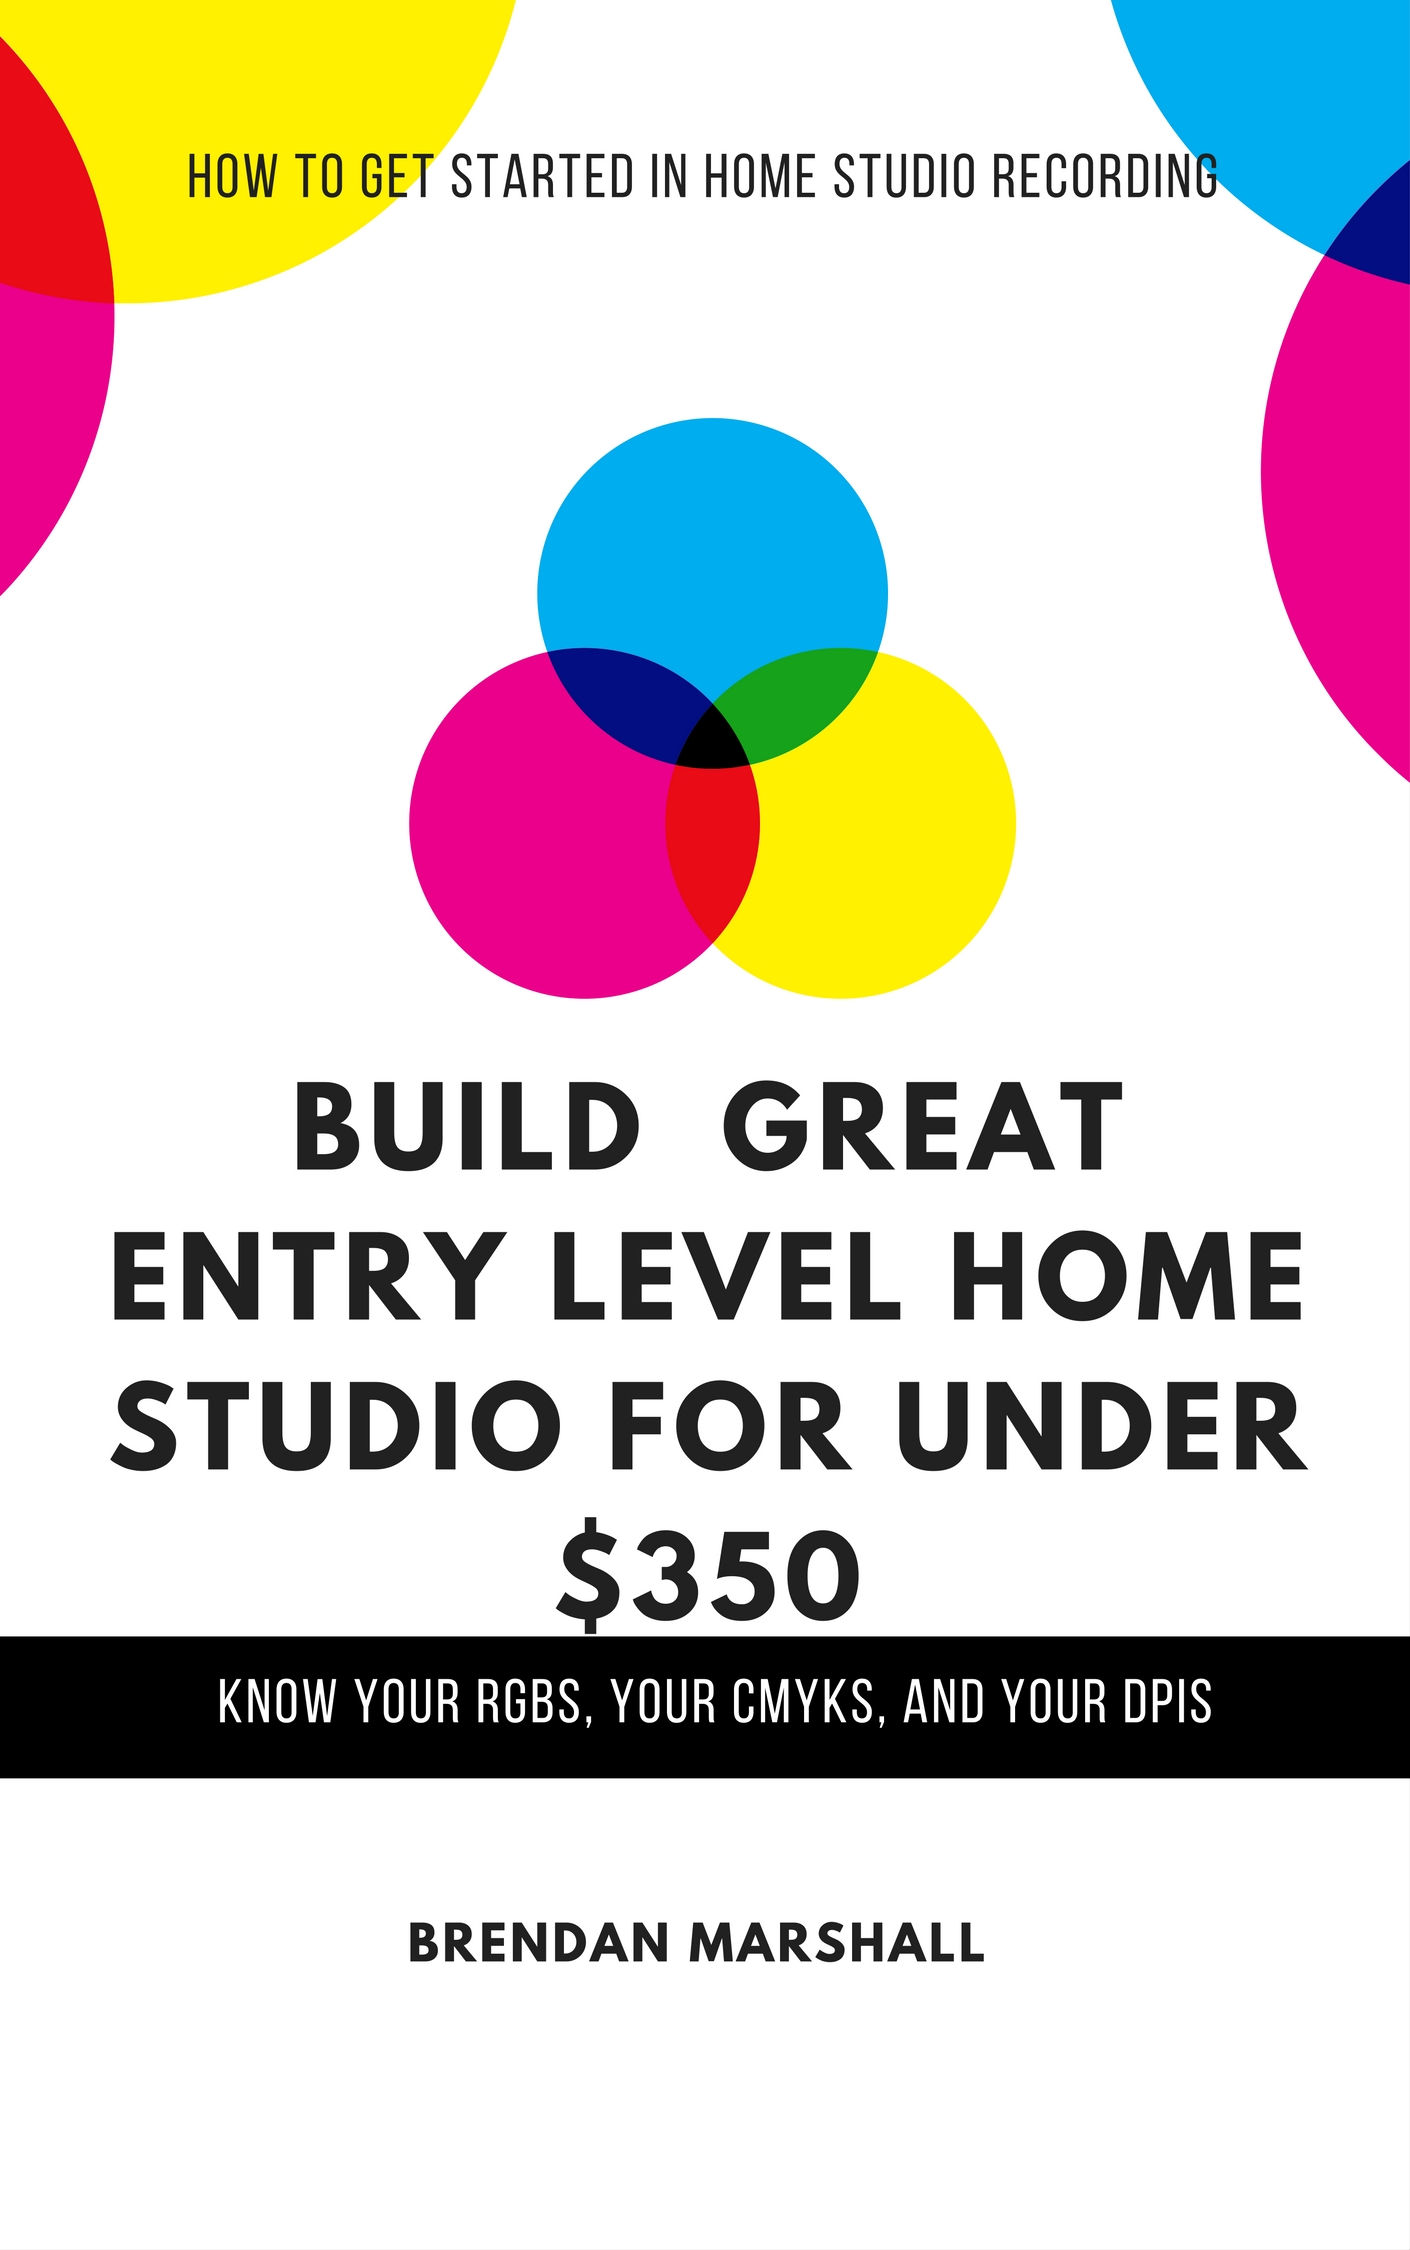 Build A Great Entry Level Home Studio For Under $350